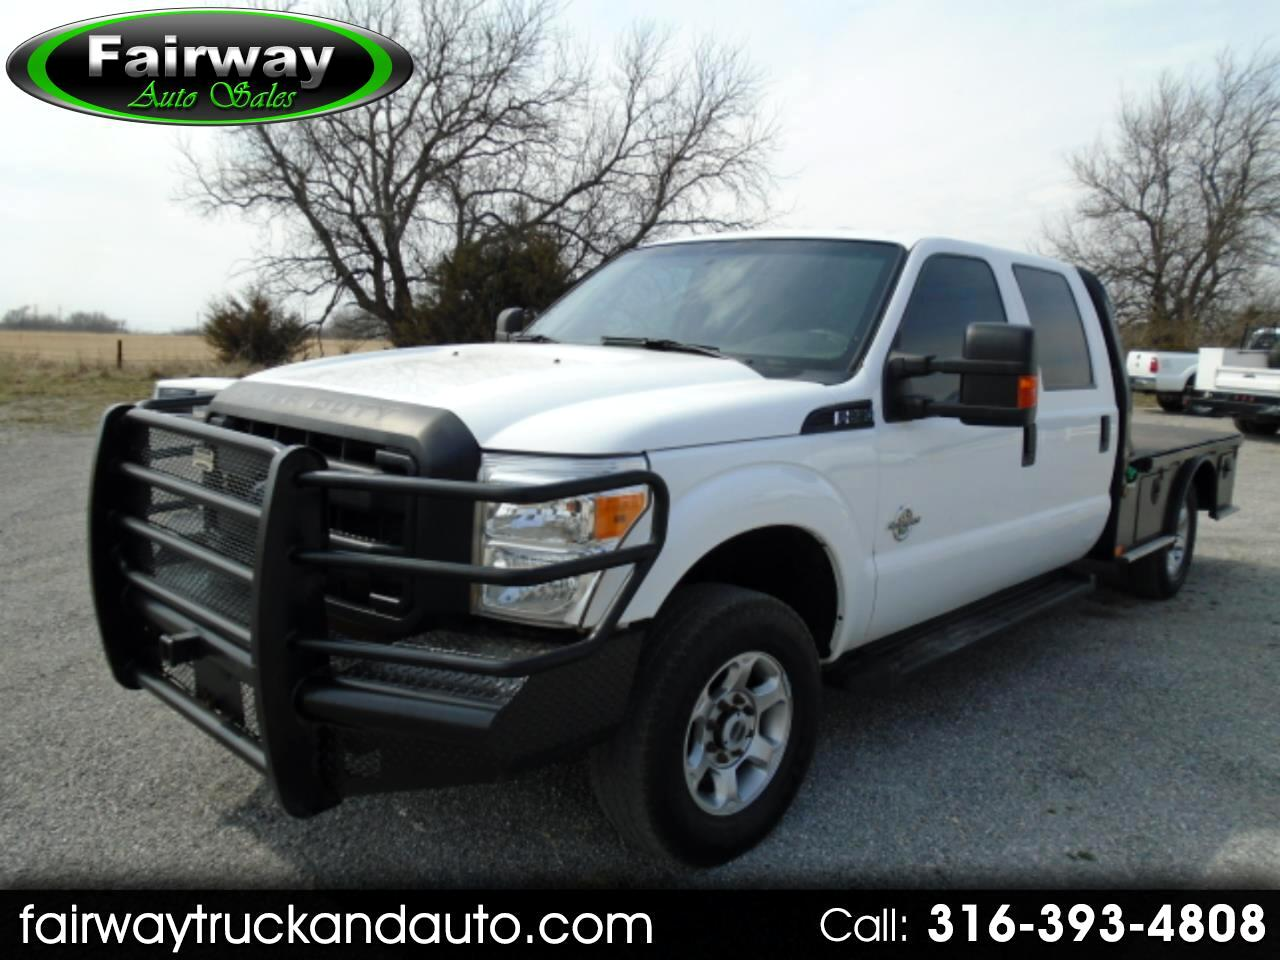 2015 Ford F-250 SD XL Crew Cab 4WD Flat Bed